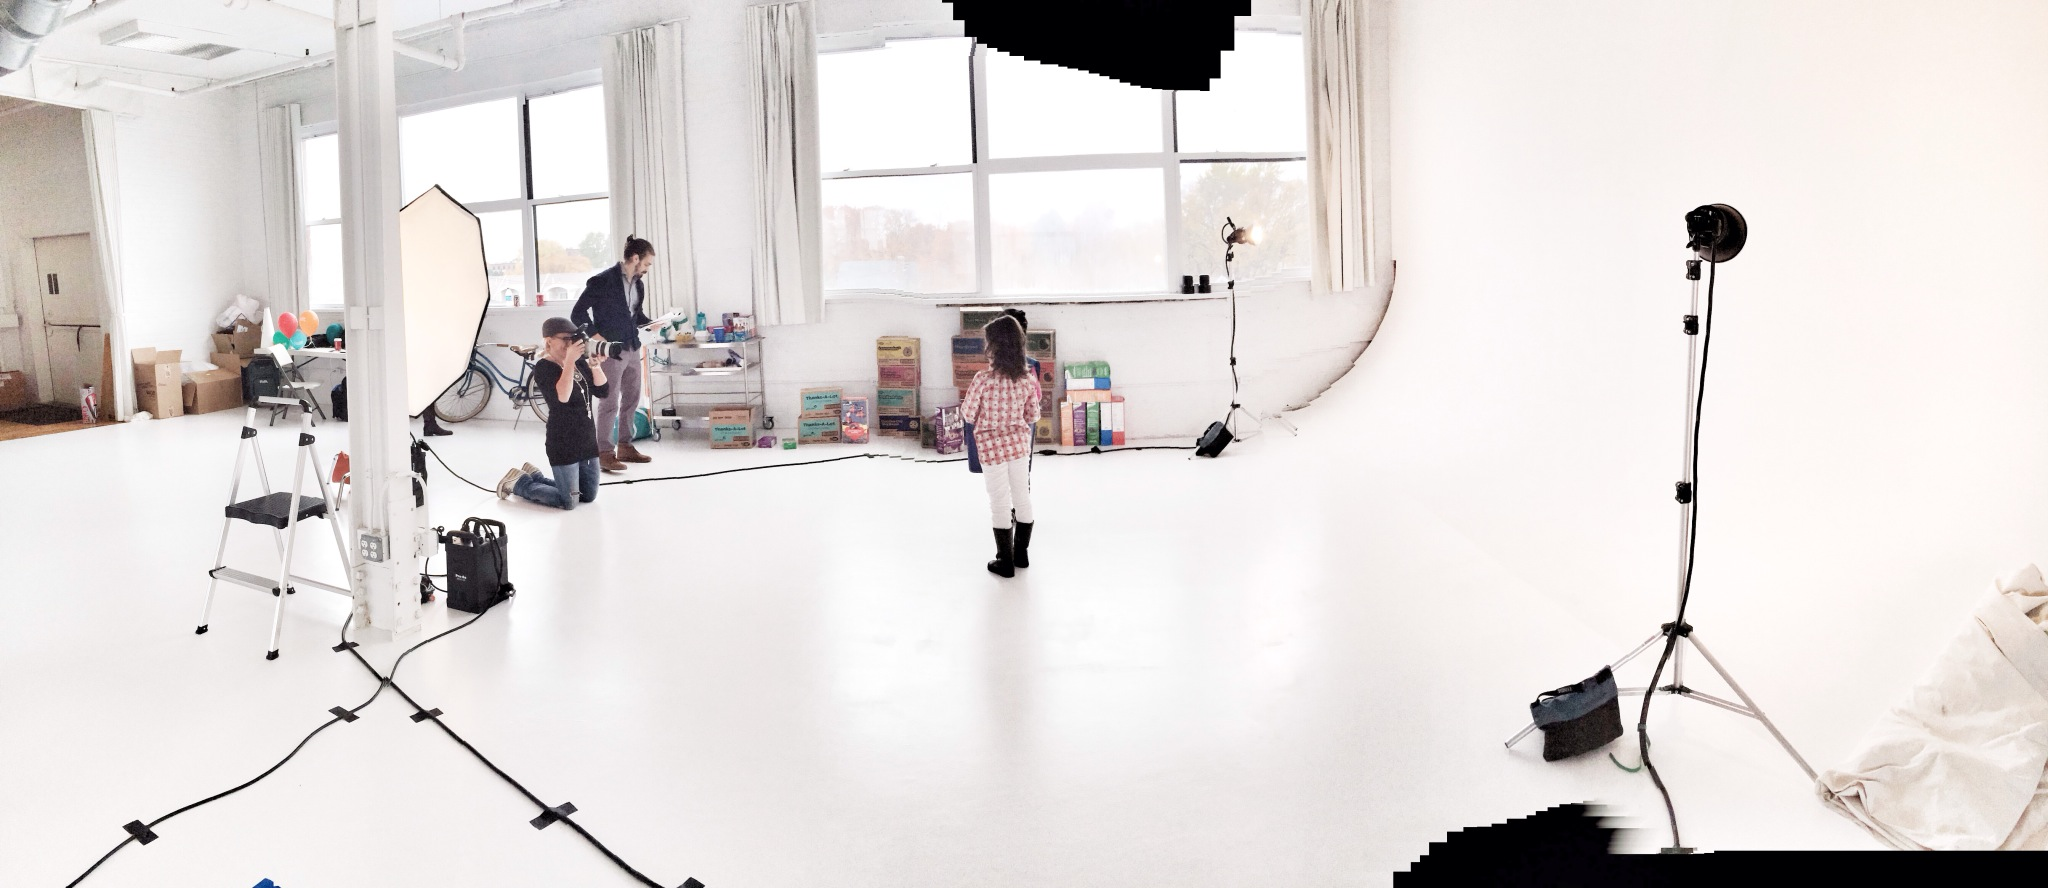 On location in Boston for ABC Bakers and Girl Scouts of America